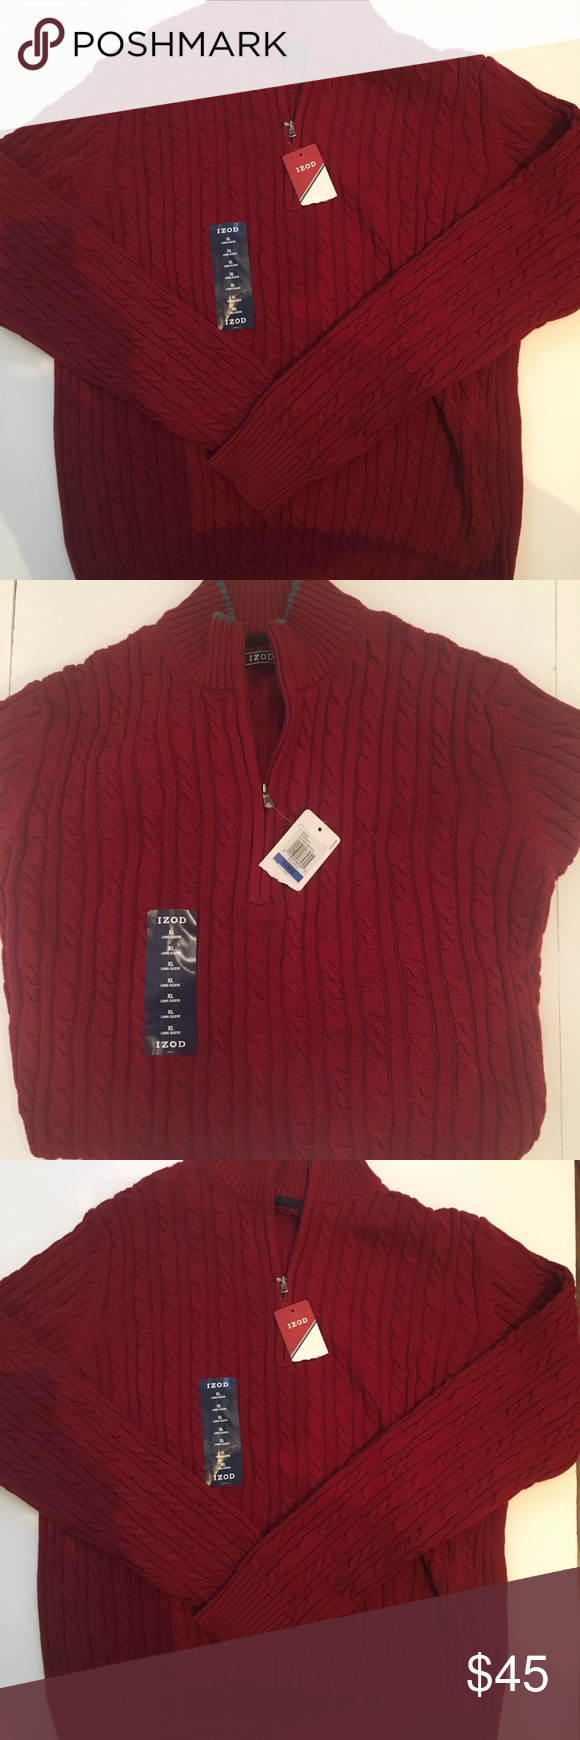 Izod Men's Cable Knit Durham Sweater Size XL NWT